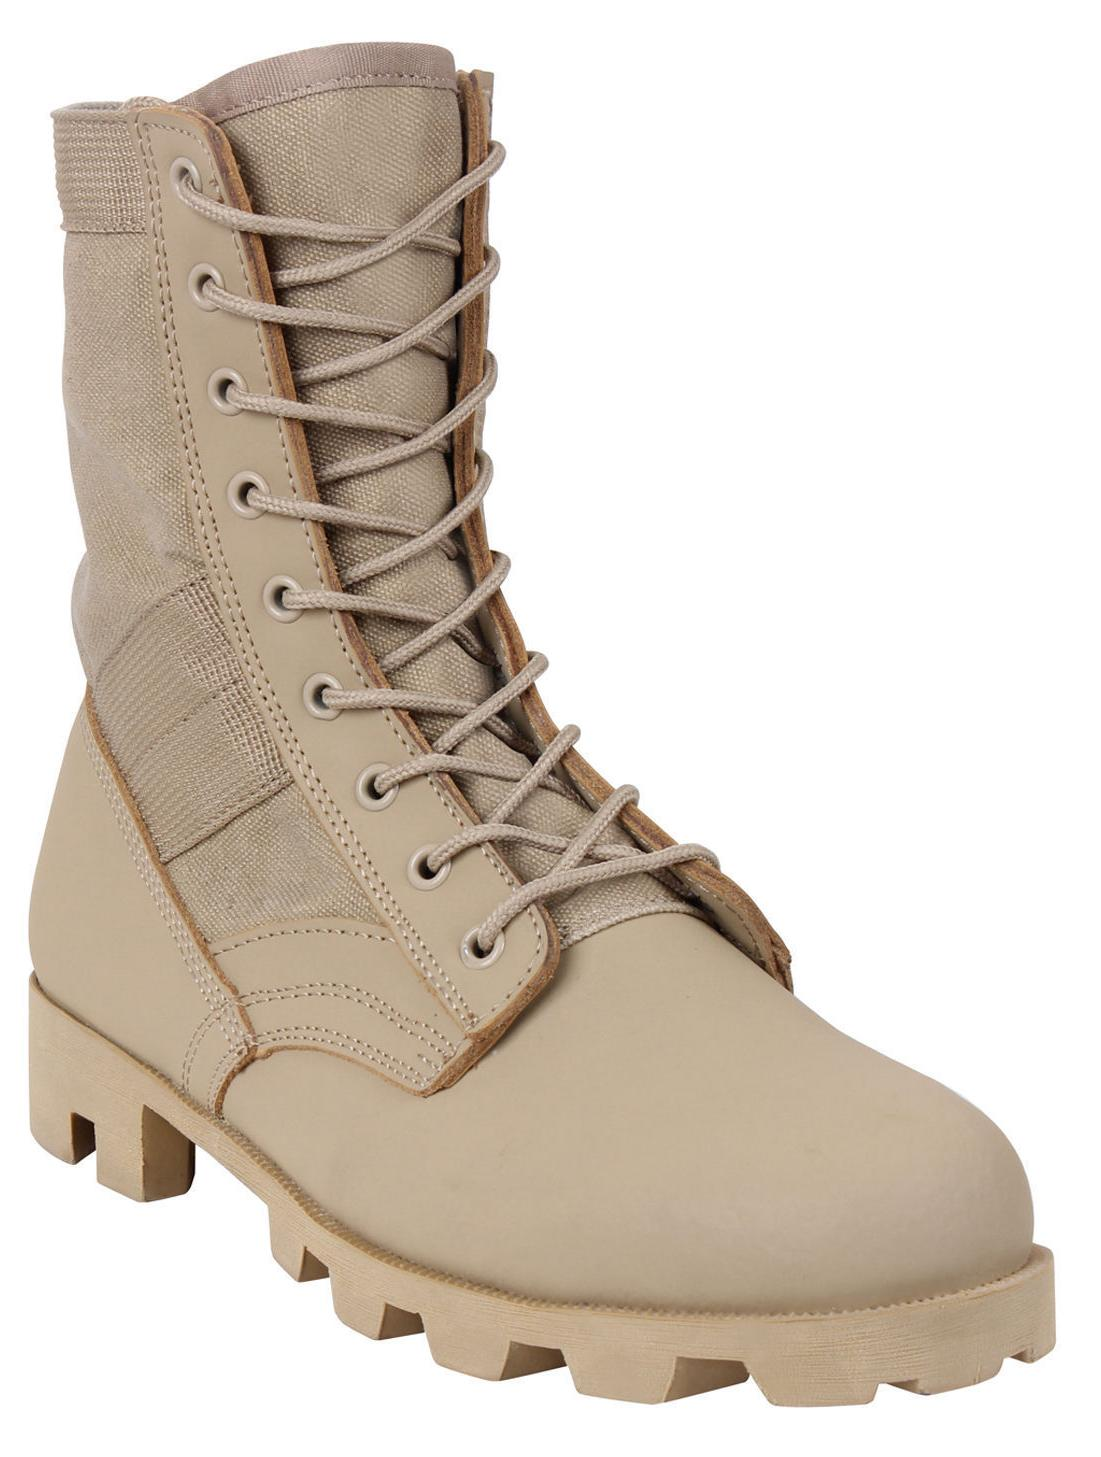 "Desert Tan Panama Sole Combat Boots Military 8"" Tactical Jun"